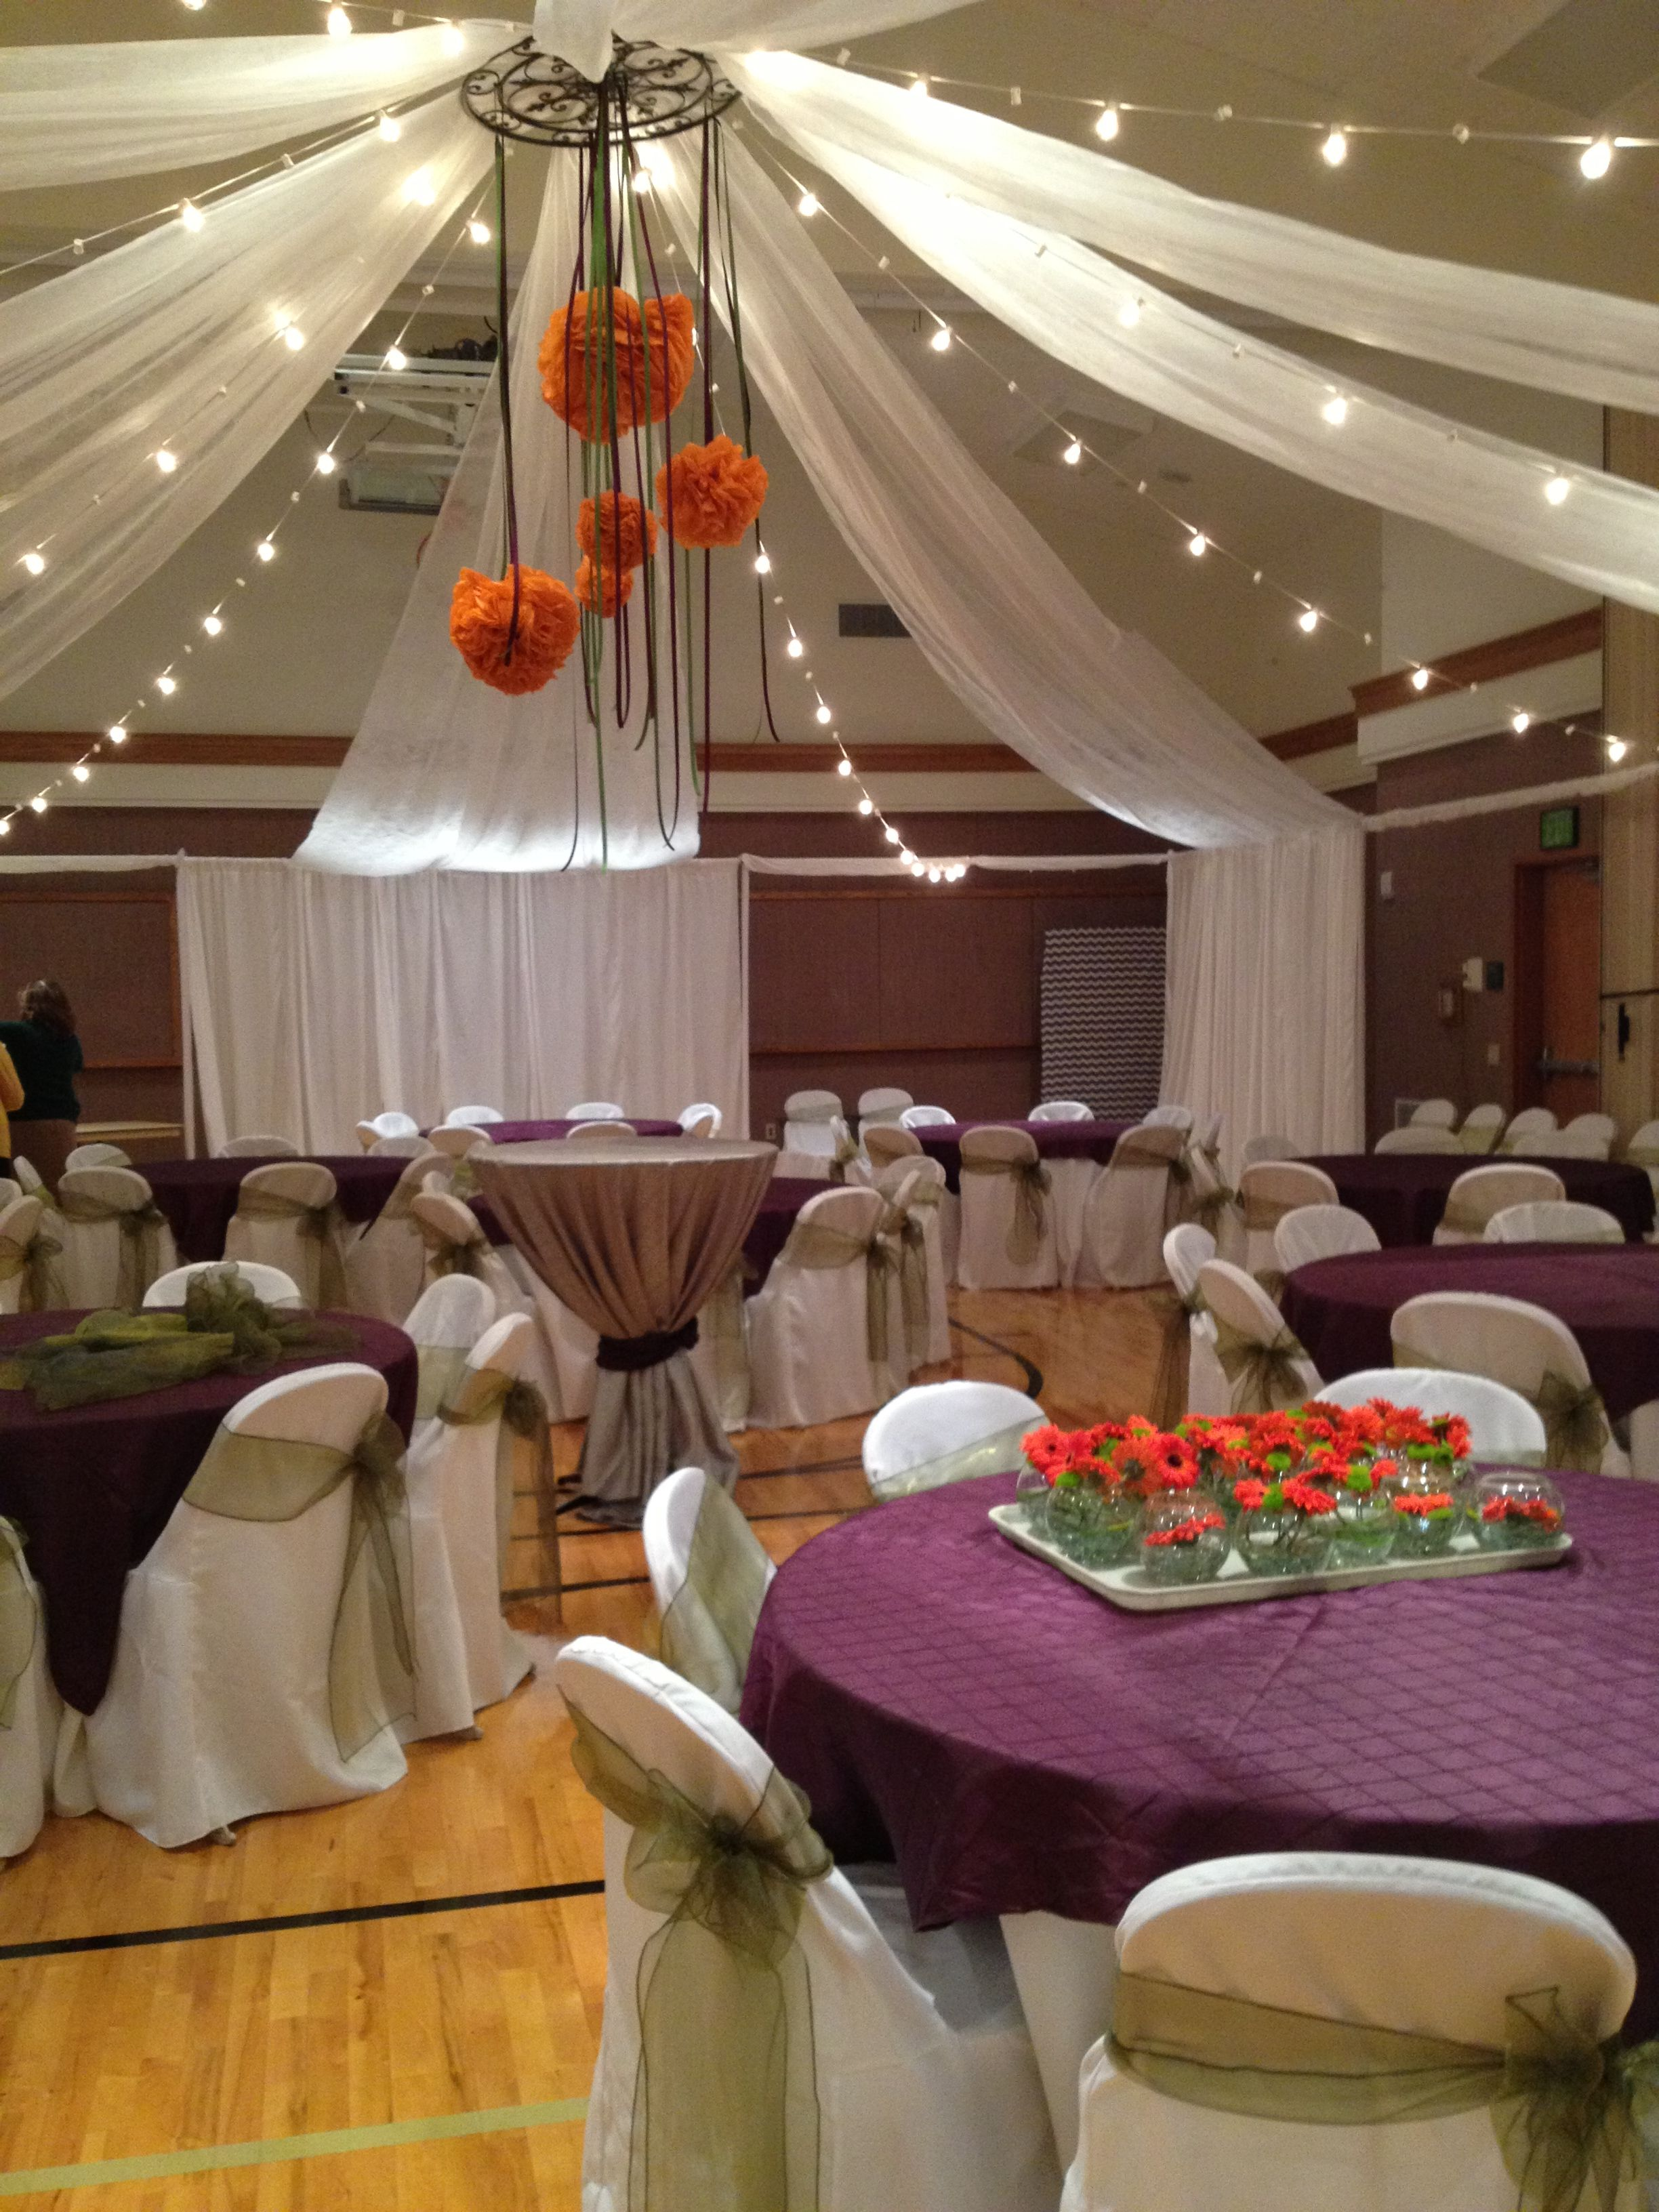 Ceilings Event Masters Decor Church House Weddingis Is What We